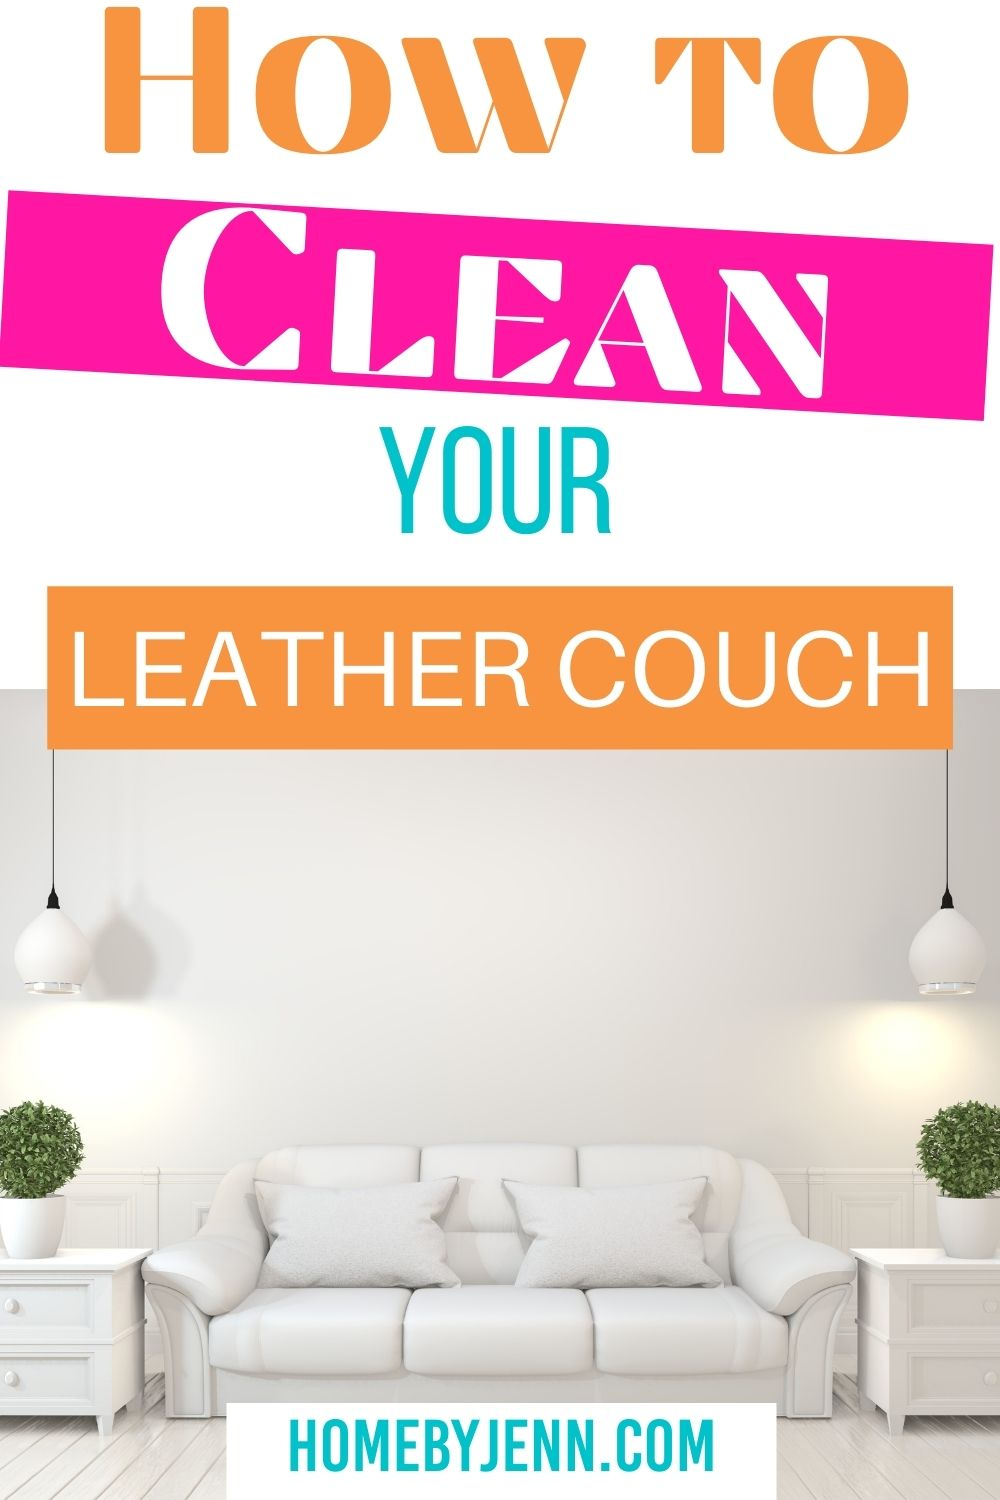 Keep your leather furniture looking clean and new by keeping it clean. Learn how to clean your leather couch with simple supplies you probably have on hand. This tutorial will show you the exact steps to take to clean your leather sofa or any leather you have. via @homebyjenn